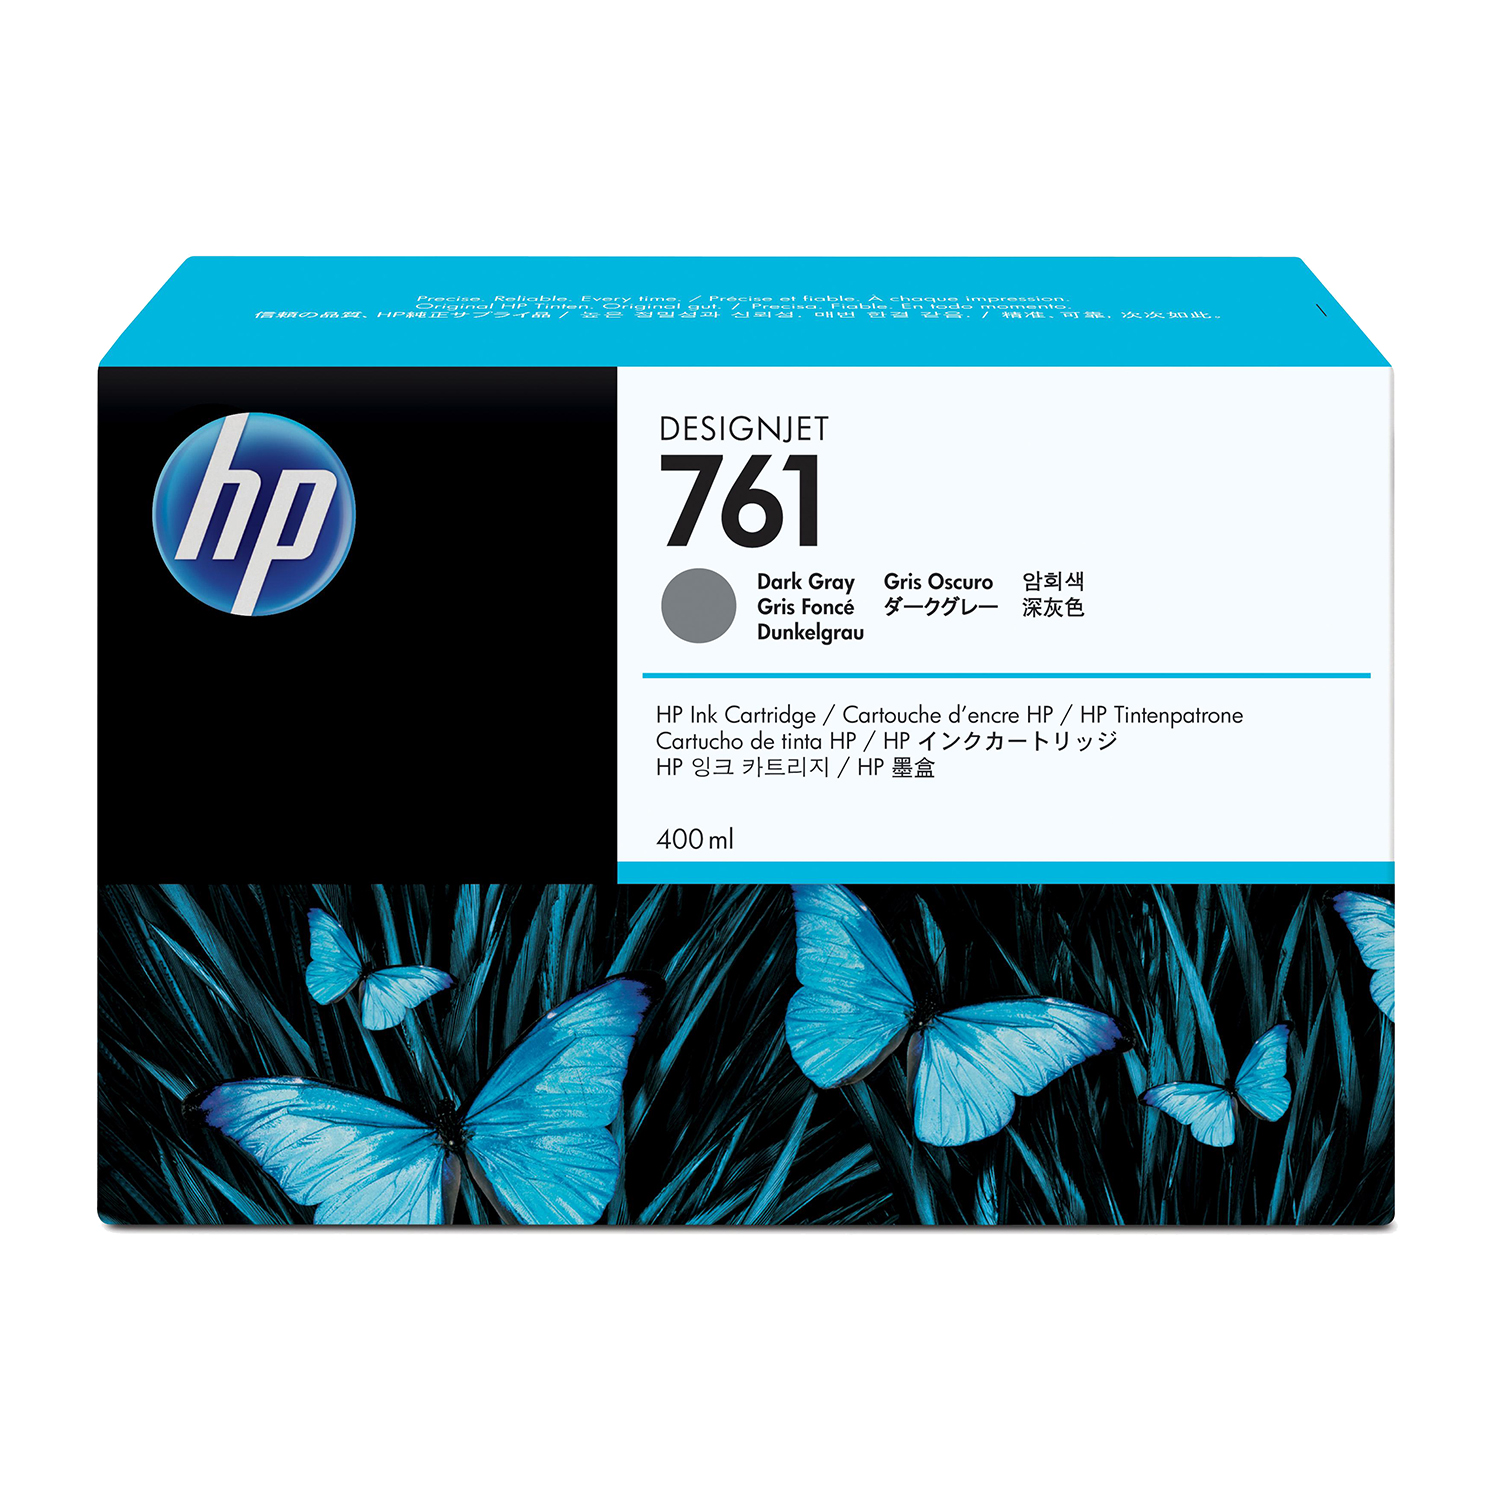 HP 761 Dark Grey Ink Cartridge 400ml for DesignJet T7100 Series Ref CM996A *3 to 5 Day Leadtime*